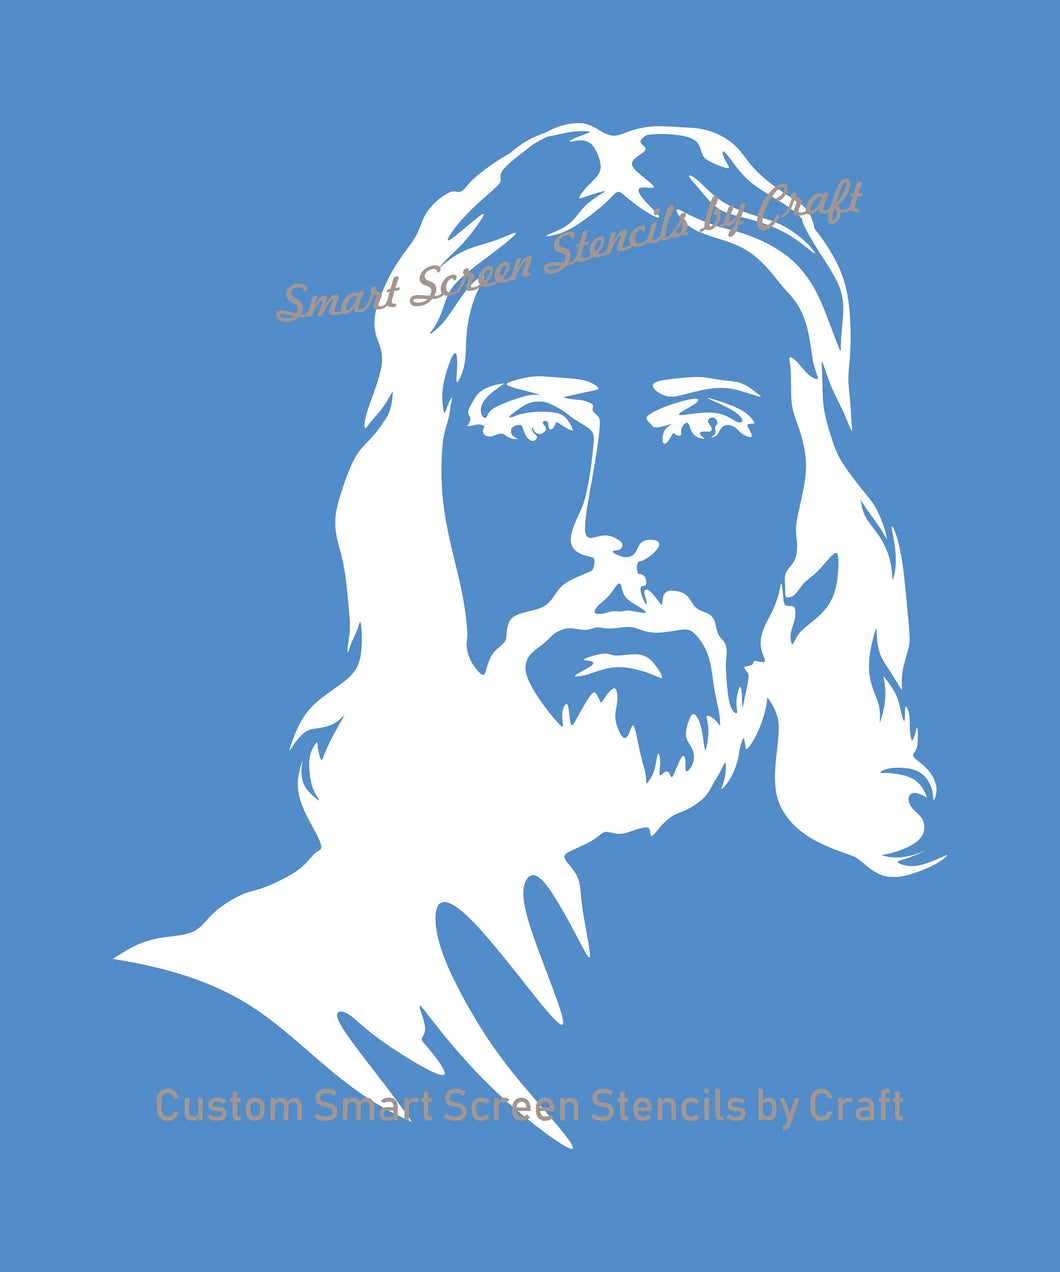 Jesus SilkScreen Stencil - Custom, Reusable, Self-adhesive - Canvas, Cards, Glass, Ceramic, Walls, Fabric, Wood, Metal, Tote-bags, Clay